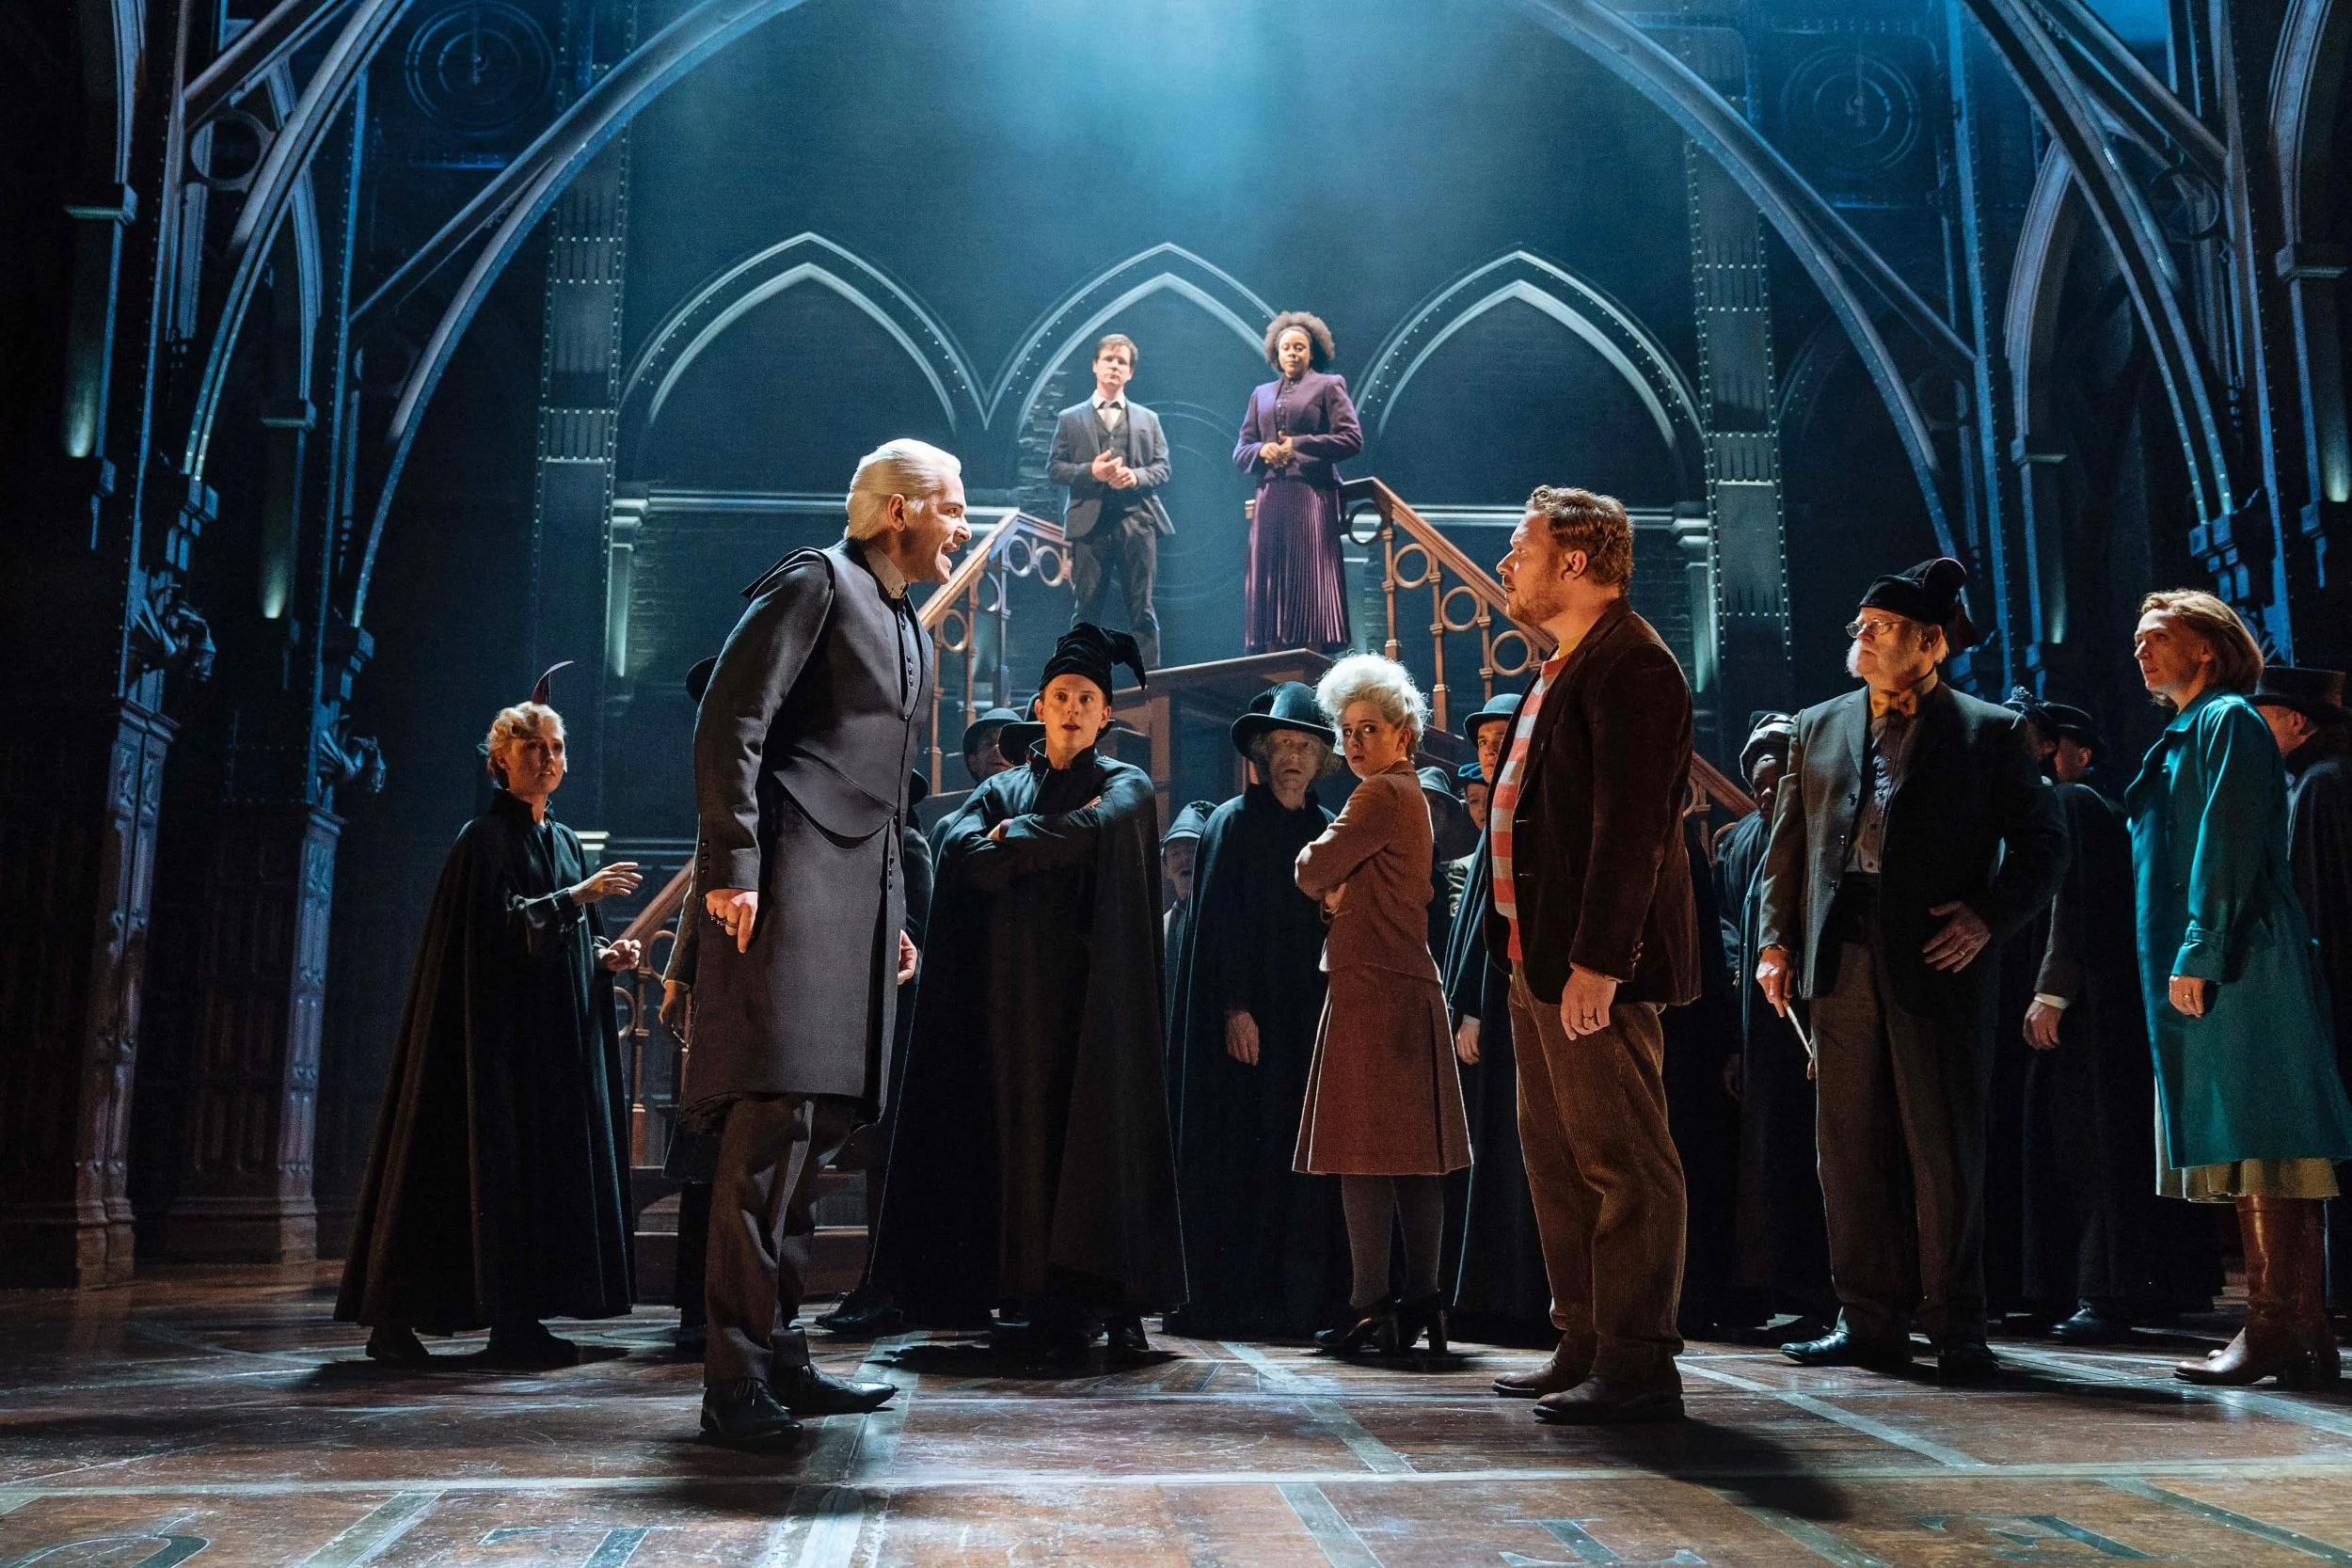 Premier Fitness Harry Potter And The Cursed Child Tickets In London: See